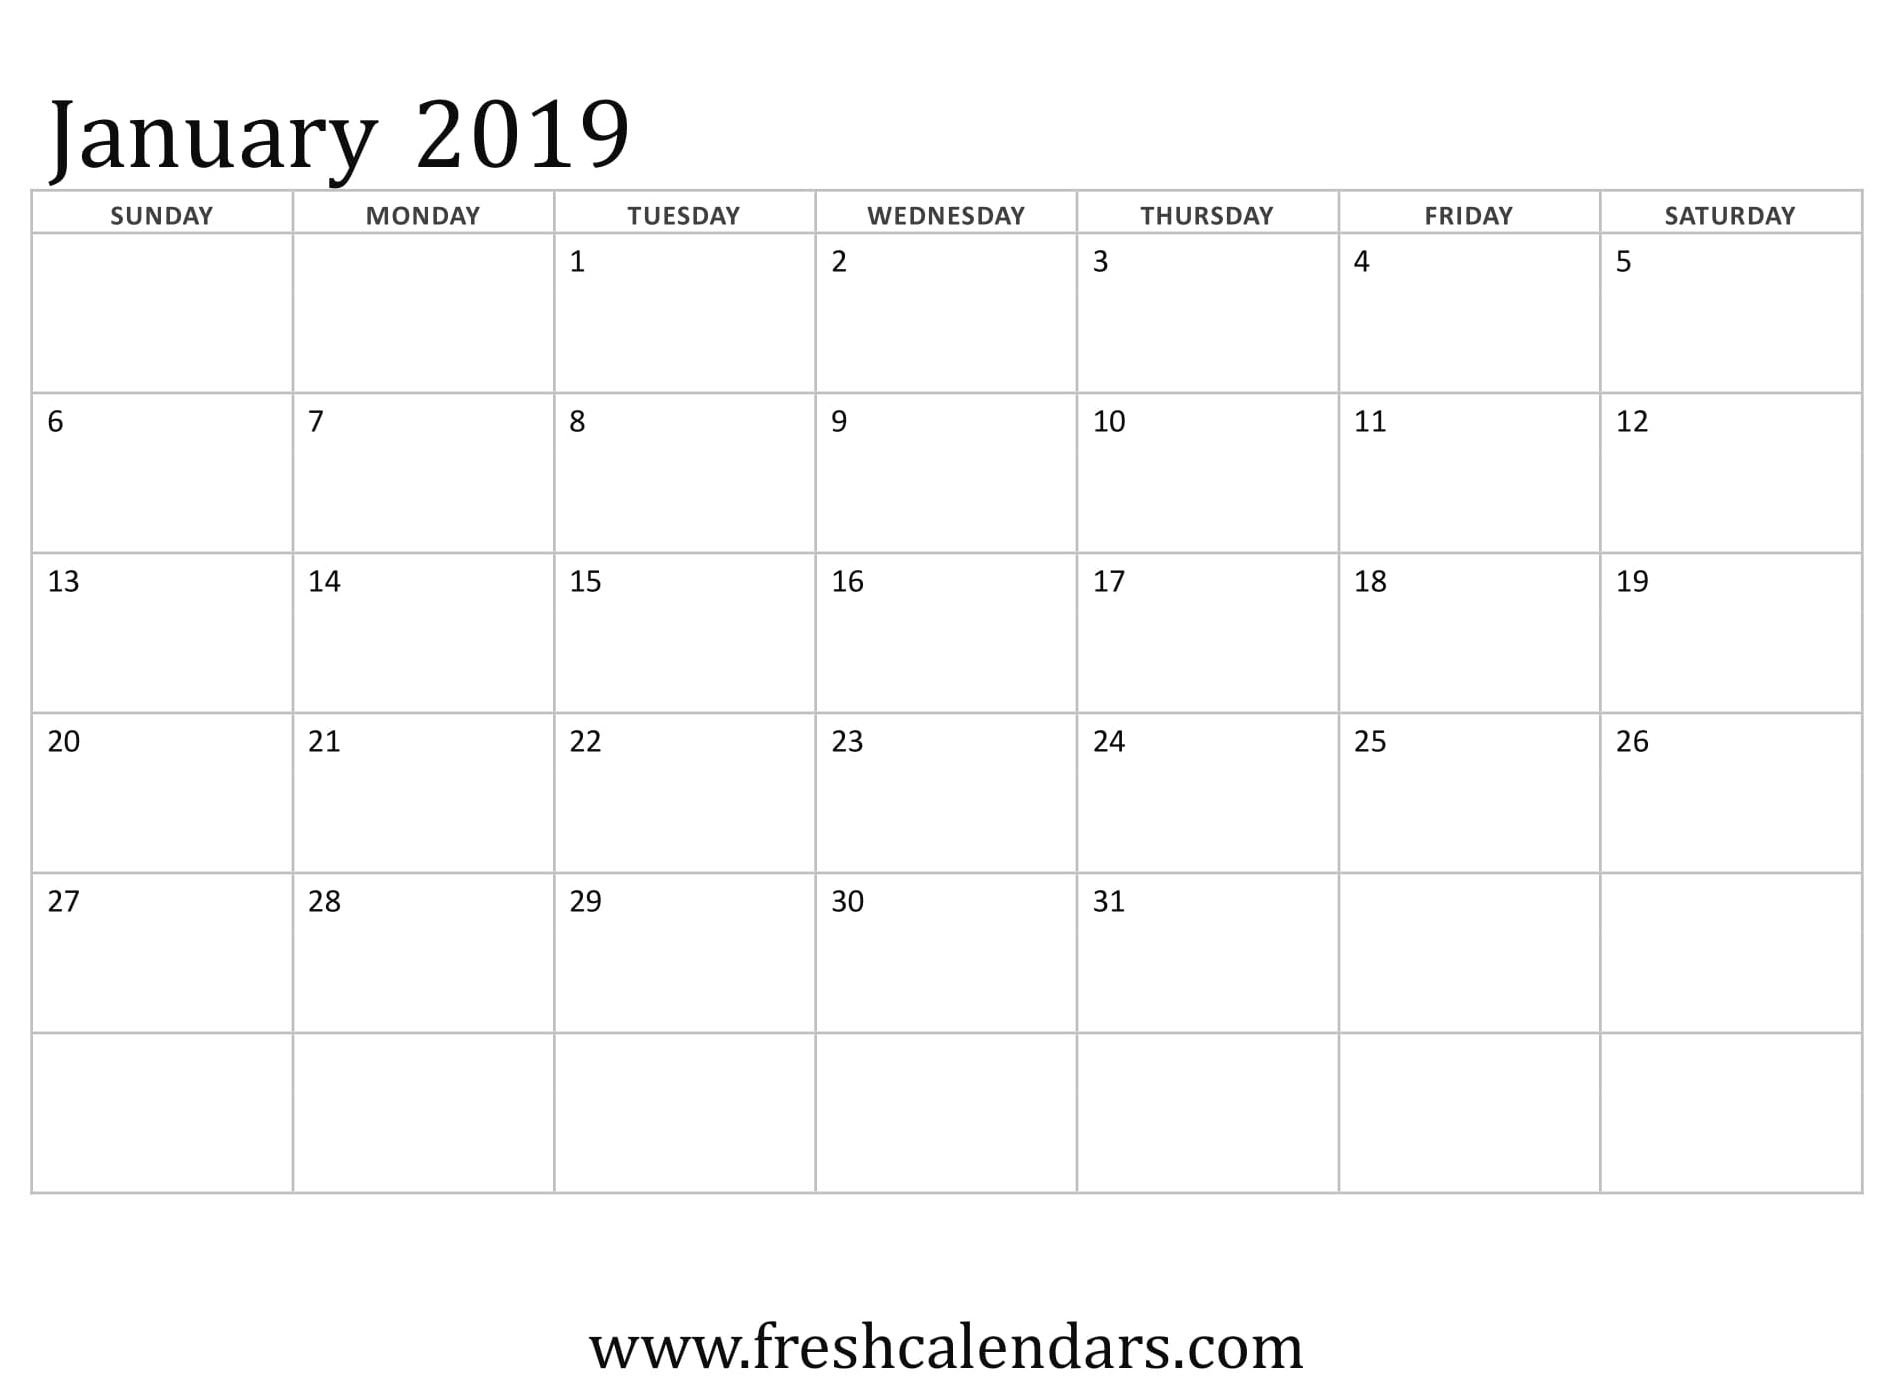 January 2019 Printable Calendars - Fresh Calendars January 5 2019 Calendar